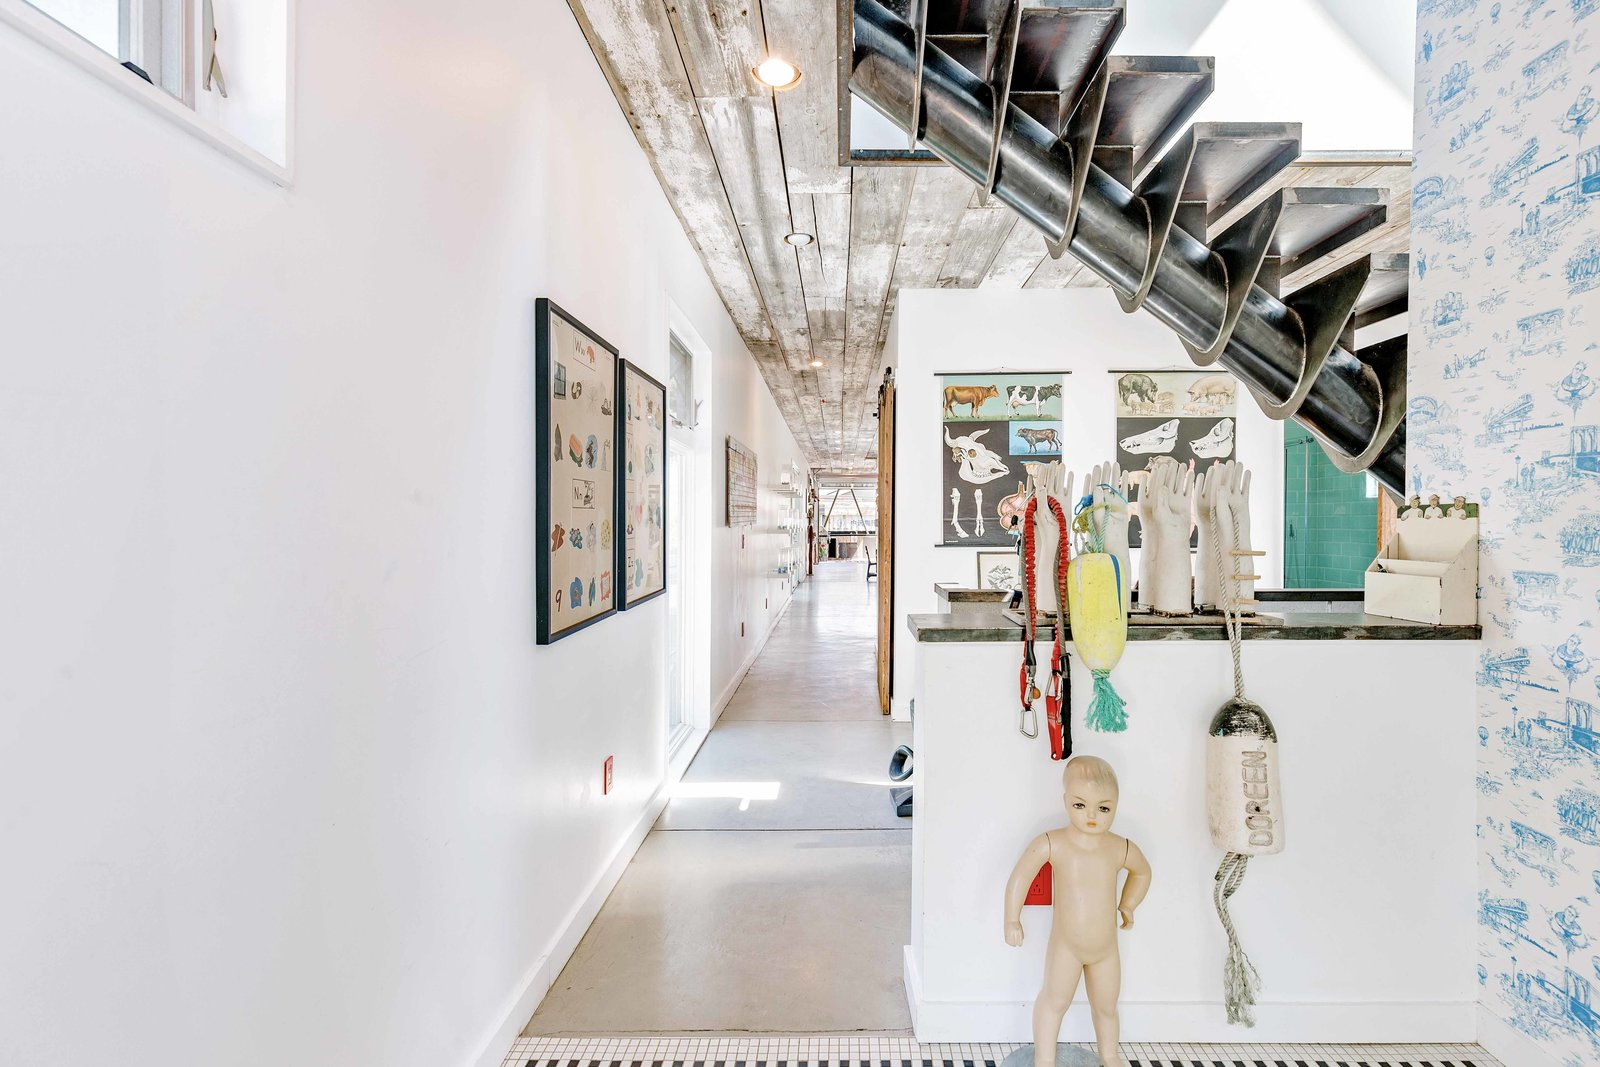 """Inside, the couple designed the home to match their own fun and quirky style. Immediately catching the eye is a metal staircase, the base of which is a <span style=""""font-family: Theinhardt, -apple-system, BlinkMacSystemFont, &quot;Segoe UI&quot;, Roboto, Oxygen-Sans, Ubuntu, Cantarell, &quot;Helvetica Neue&quot;, sans-serif;"""">12  Photo 3 of 22 in An Arty Couple Say Goodbye to Their Handcrafted, Net-Zero Shipping Container House for $3.15M"""